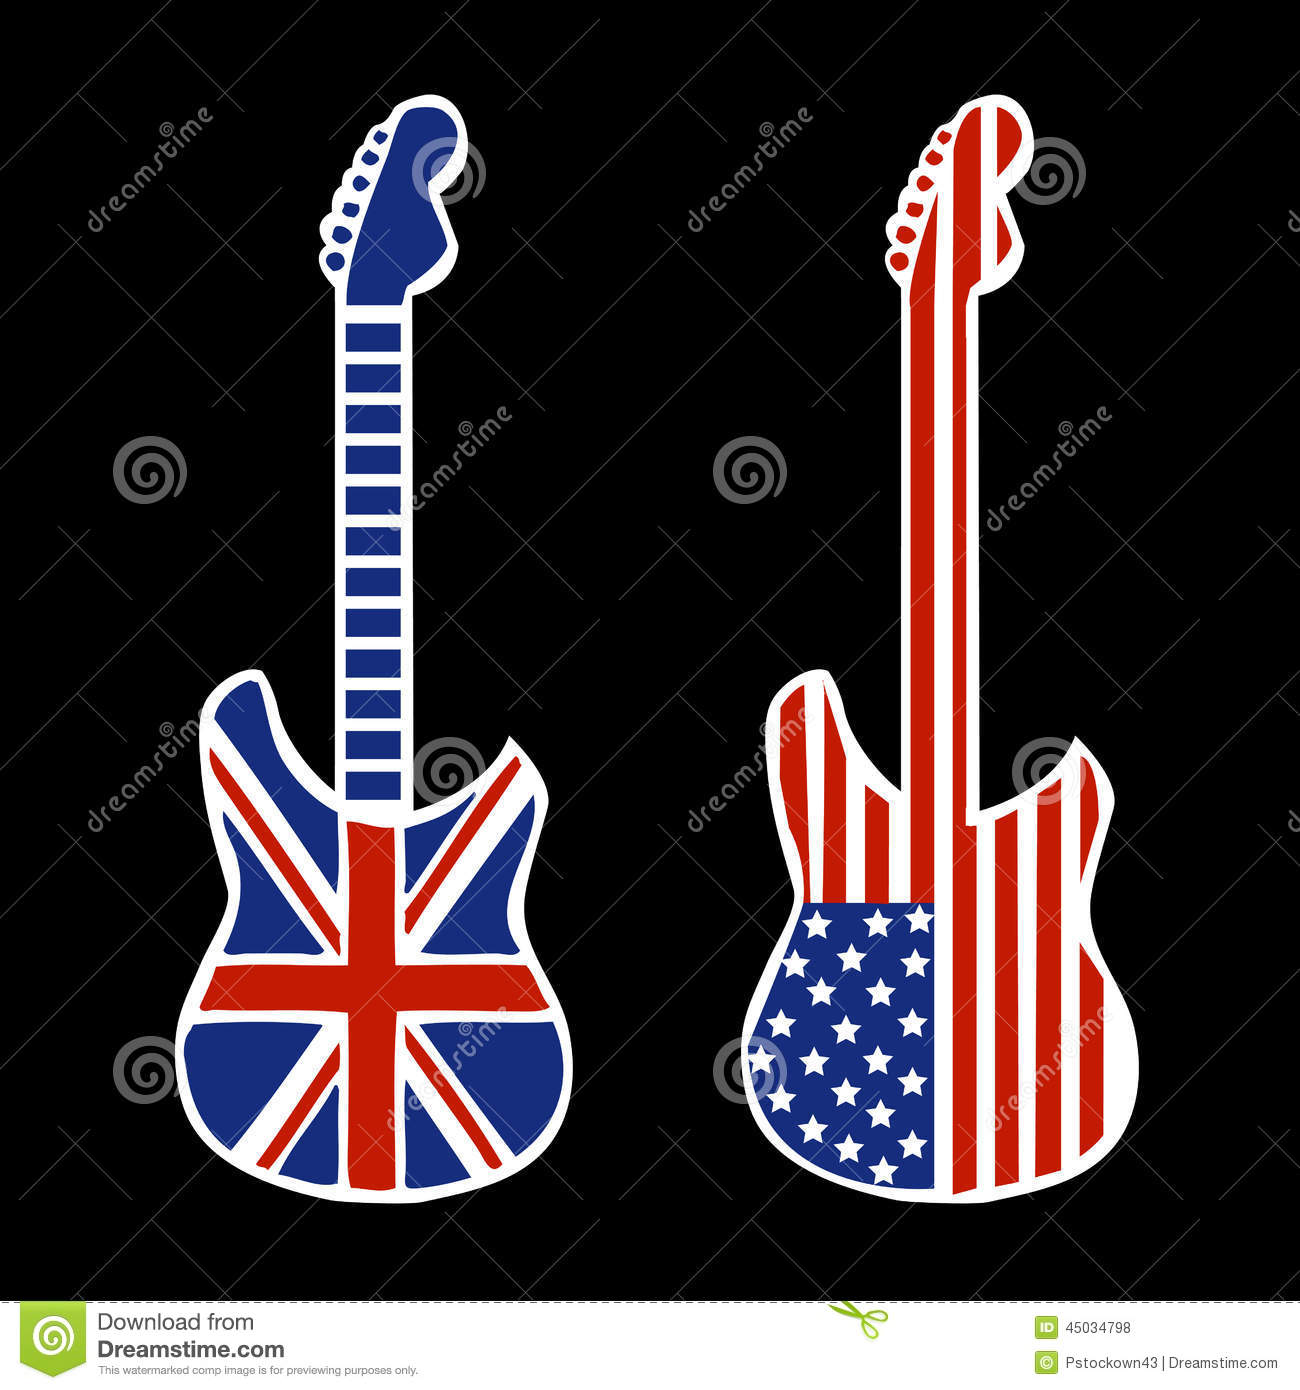 british rock music Listen to and download british rock songs songs find new songs on indie shuffle, a music blog that helps you discover new music and playlists.